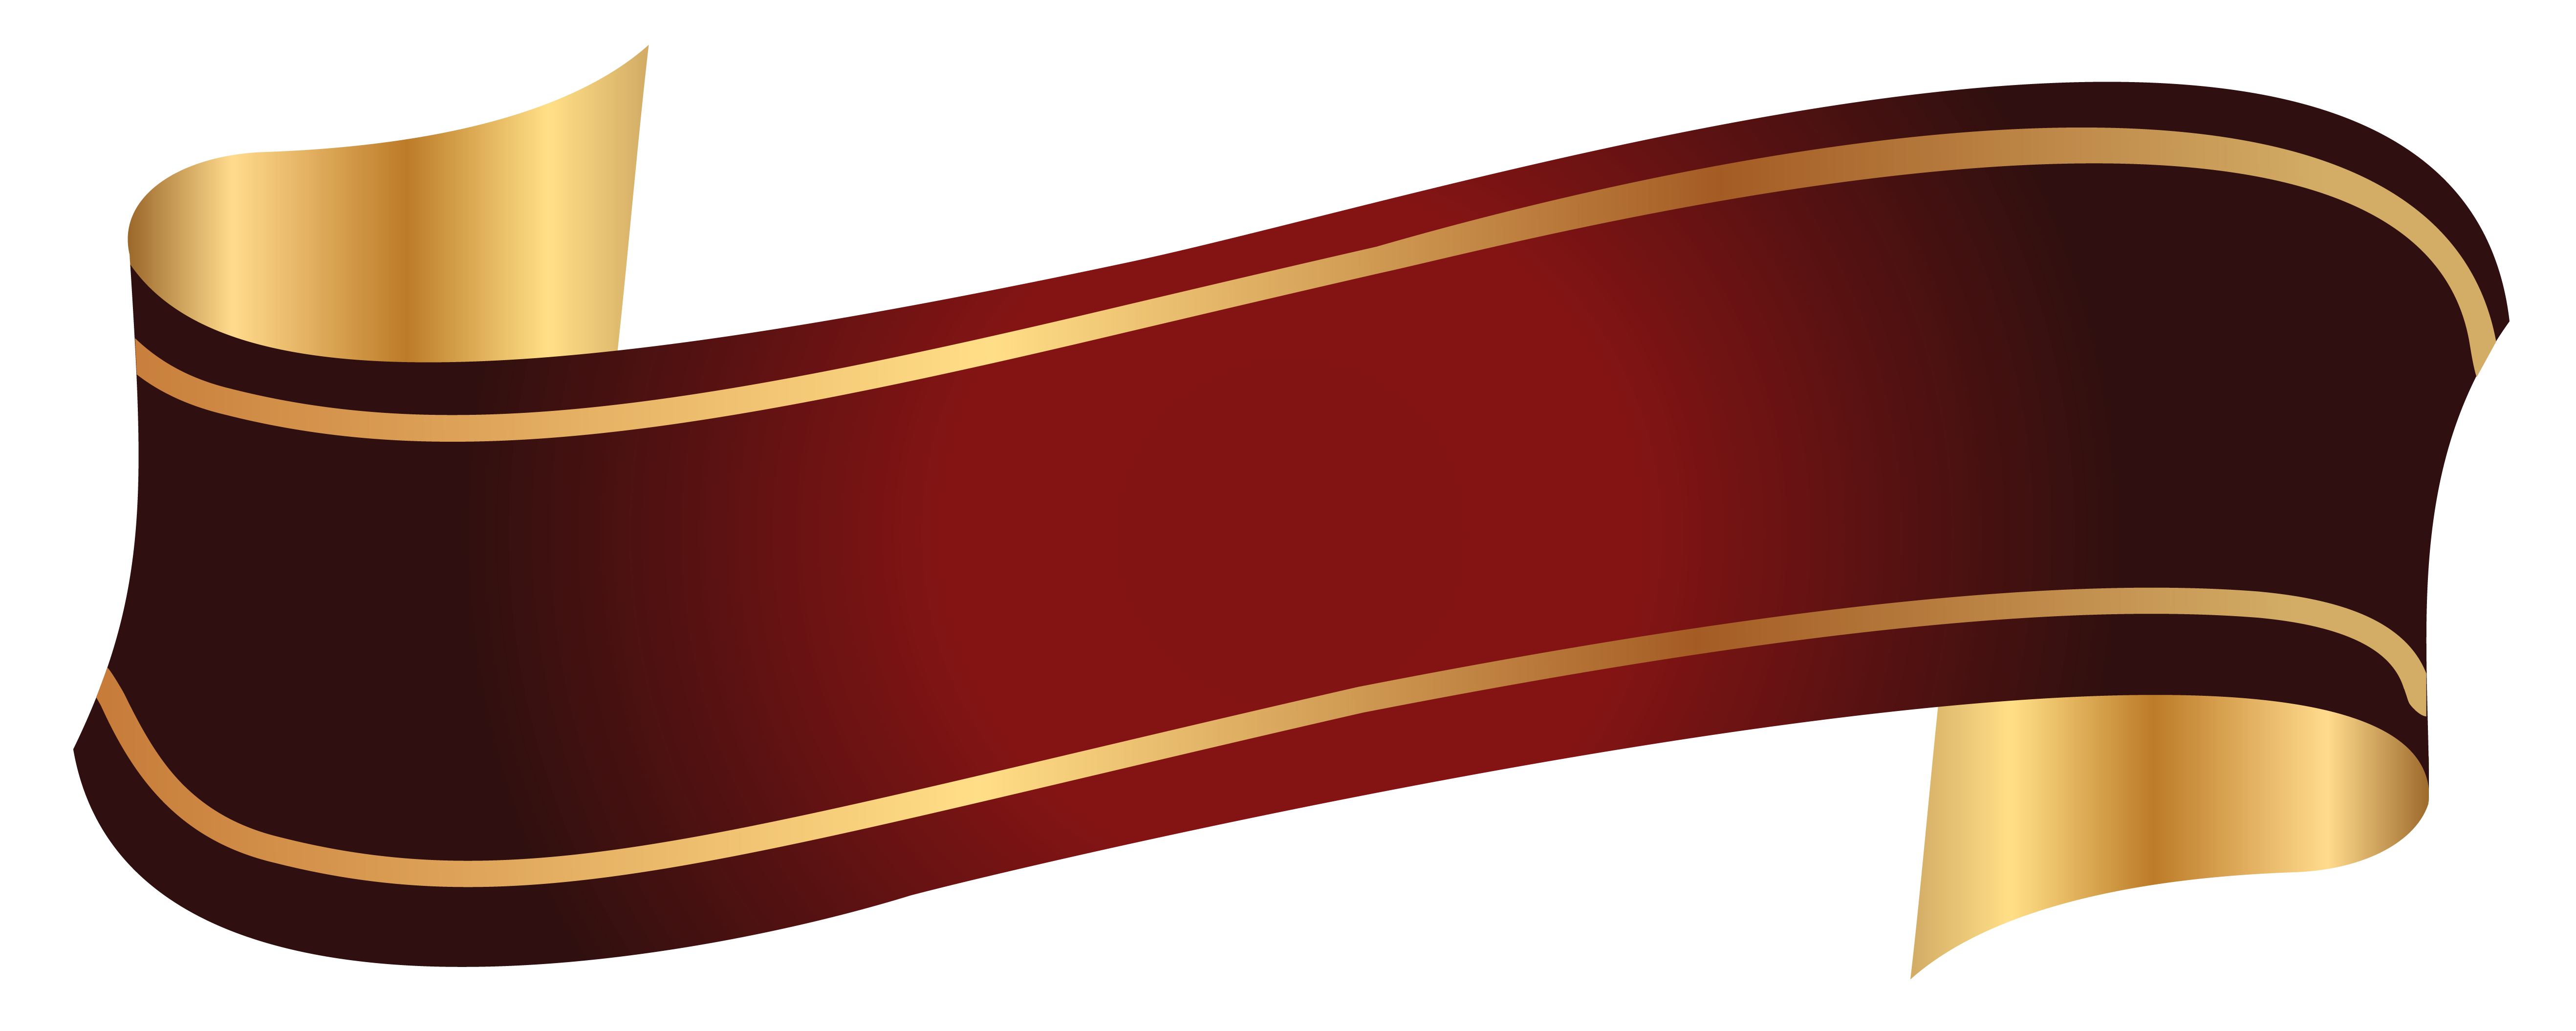 5271x2110 Red And Gold Banner Png Clipart Imageu200b Gallery Yopriceville